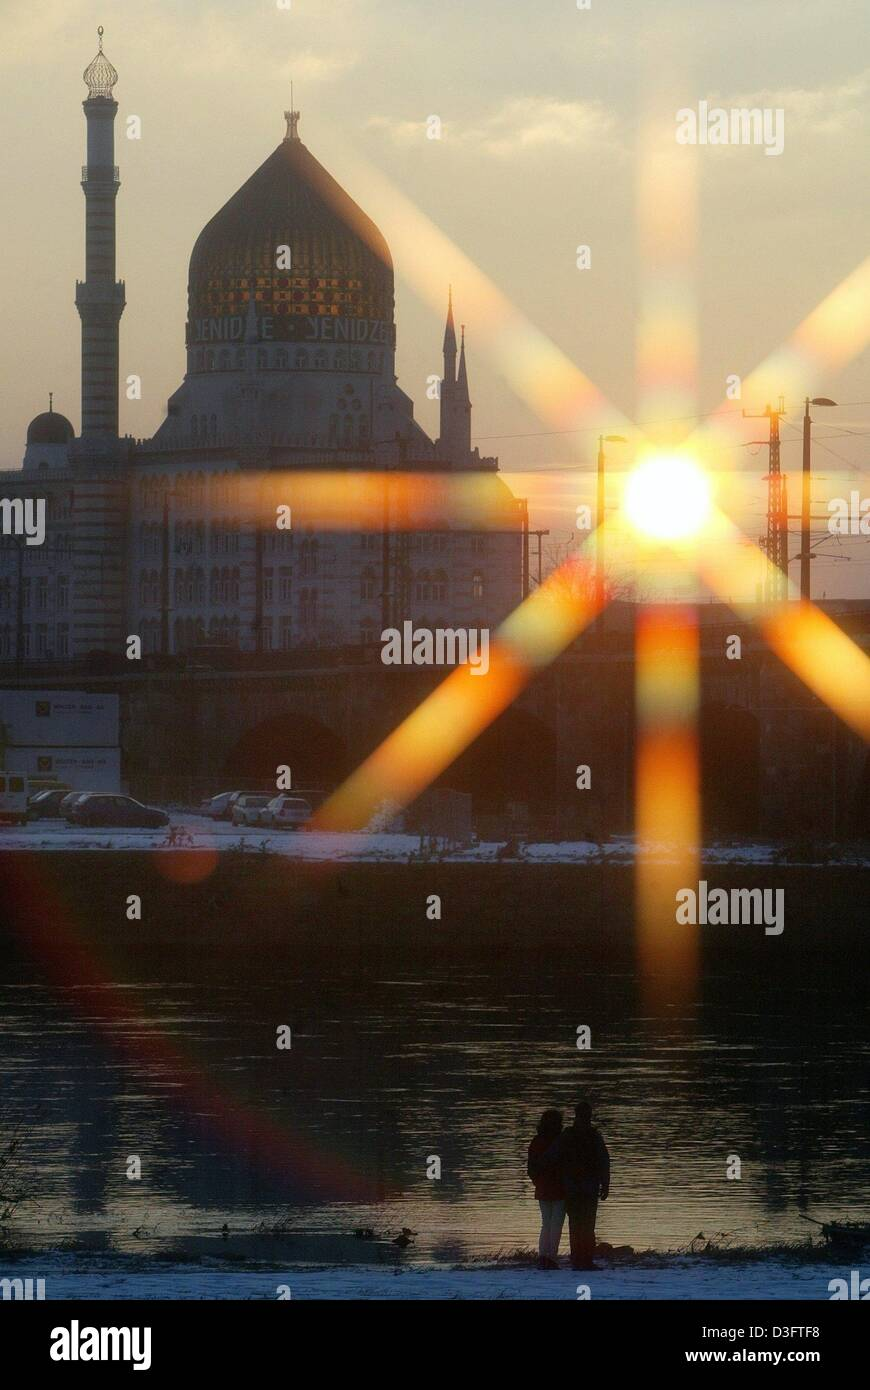 (dpa) - A couple standing on the banks of the Elbe River gazes upon the sunset over the mosque-like Yenidze building - Stock Image